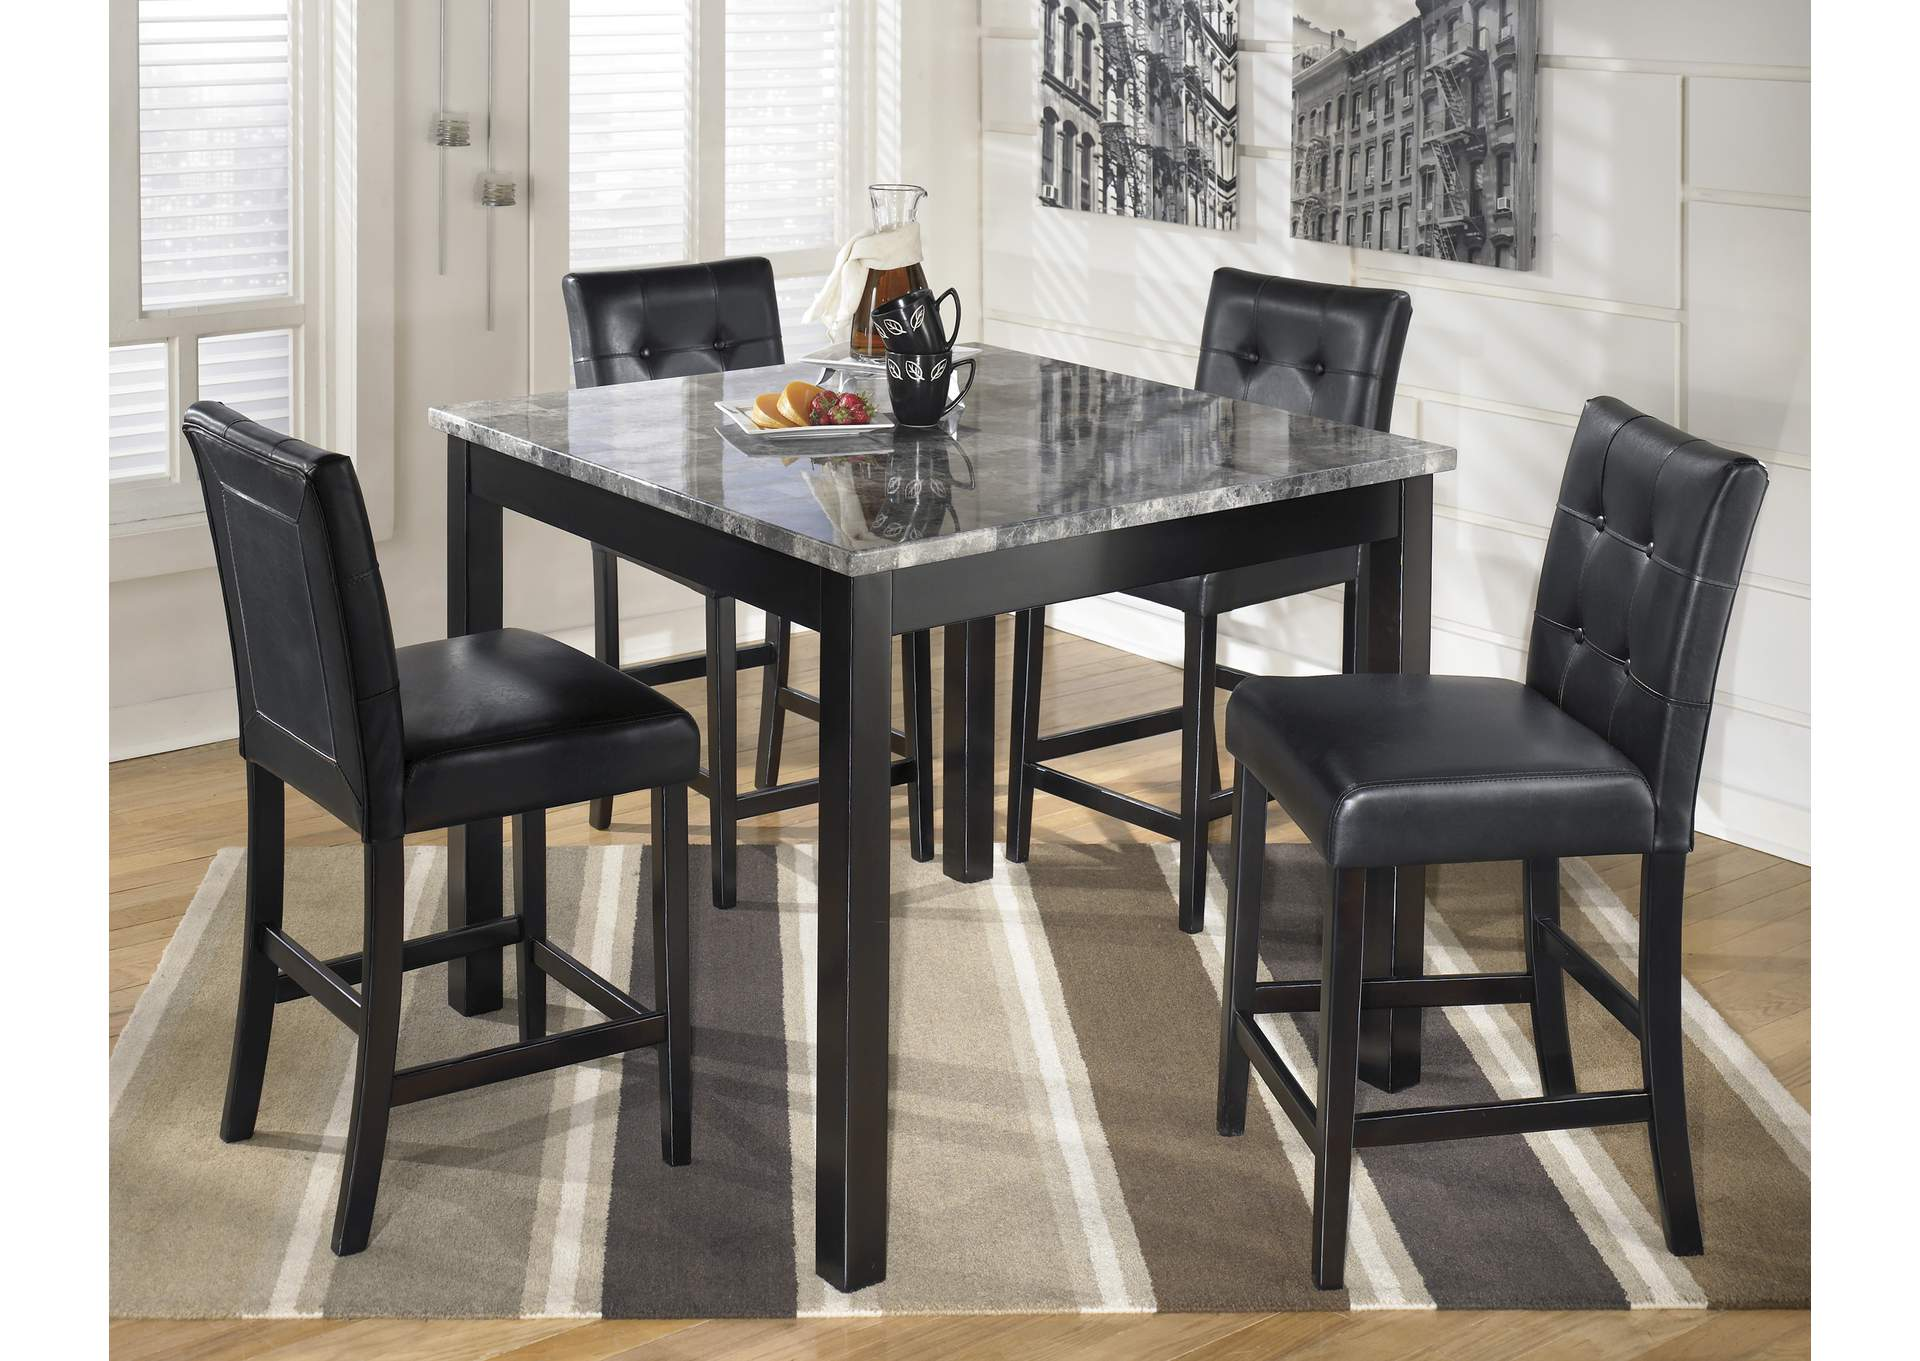 Rotana Furniture Grey Black Pub Table